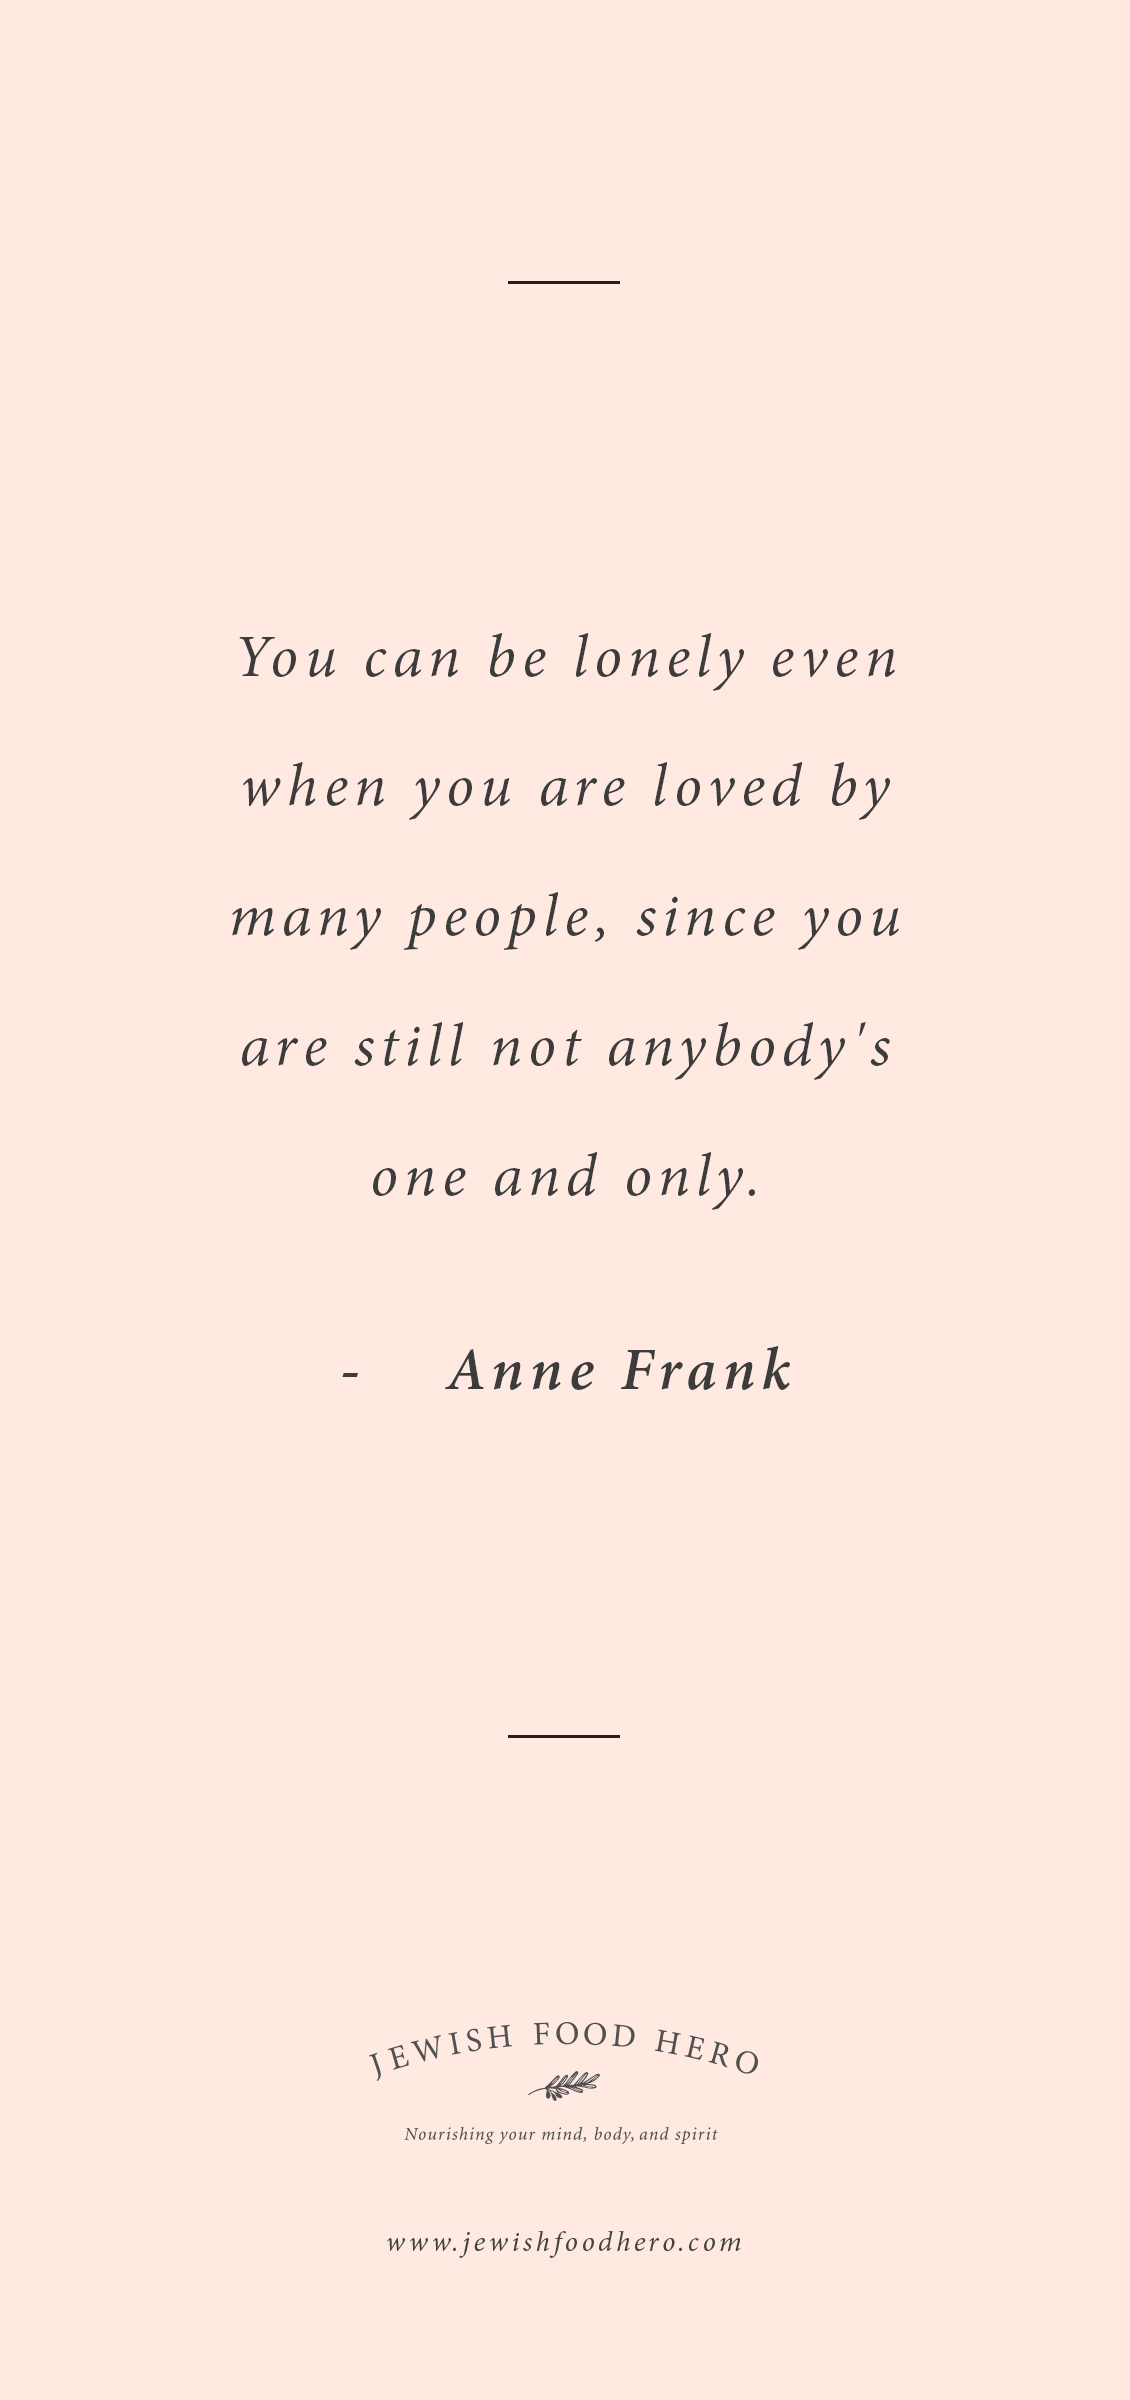 Image of: Cheesy Anne Frank Quote Quote For Life Motivation And Famous Jewish Love Quotes That Will Make You Smile Jewish Food Hero